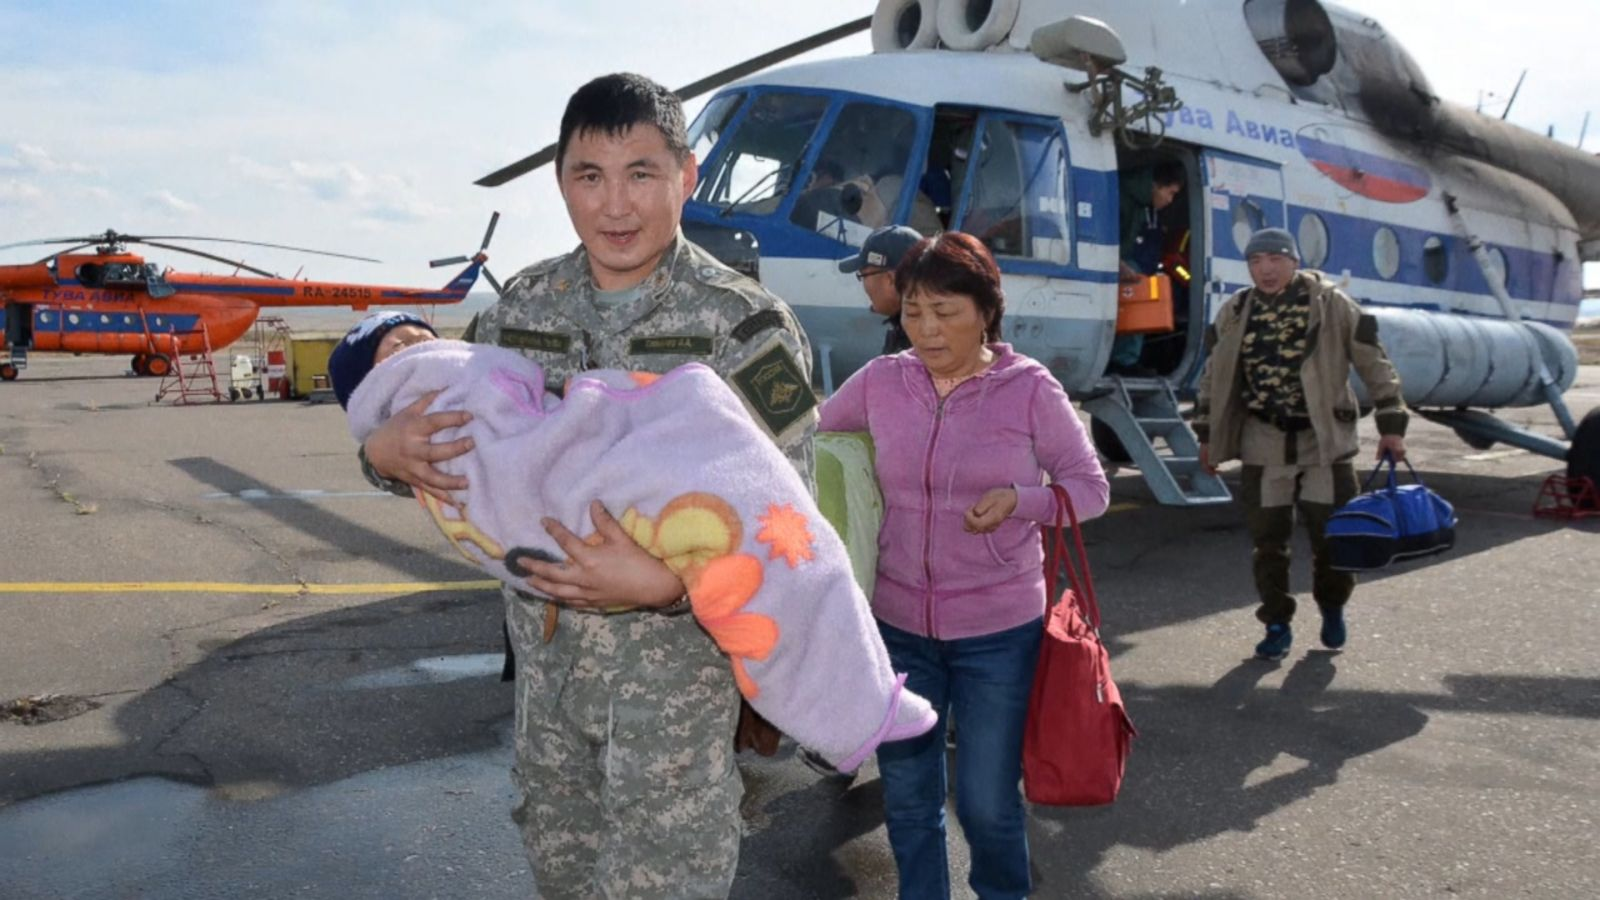 VIDEO: A 3-year-old boy has been rescued after surviving three days alone in the wilderness in a remote part of Siberia, authorities said.